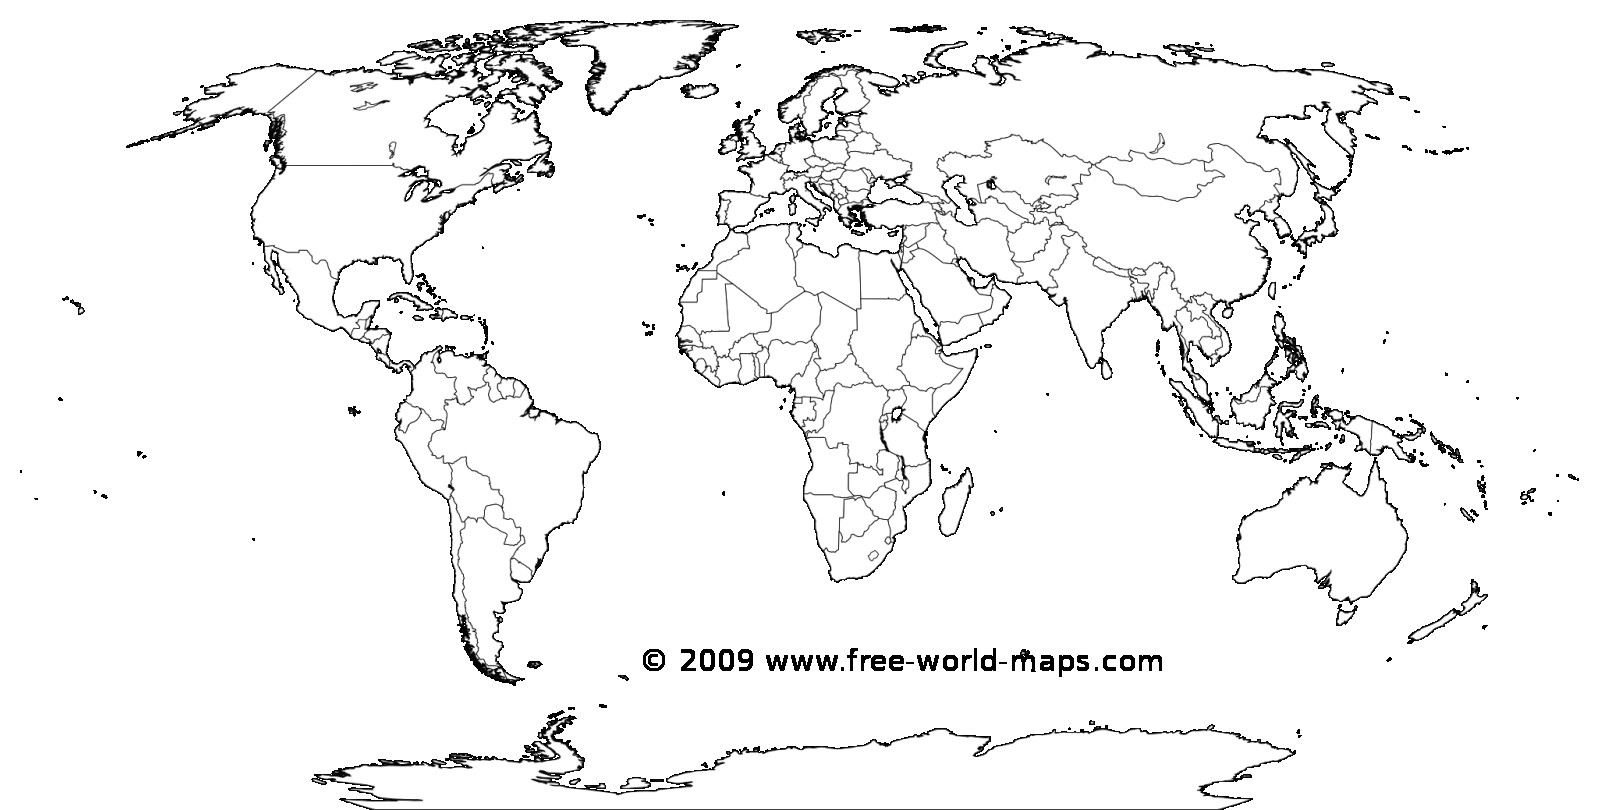 Printable World Map Free - Maplewebandpc - Free Printable Blank World Map Download